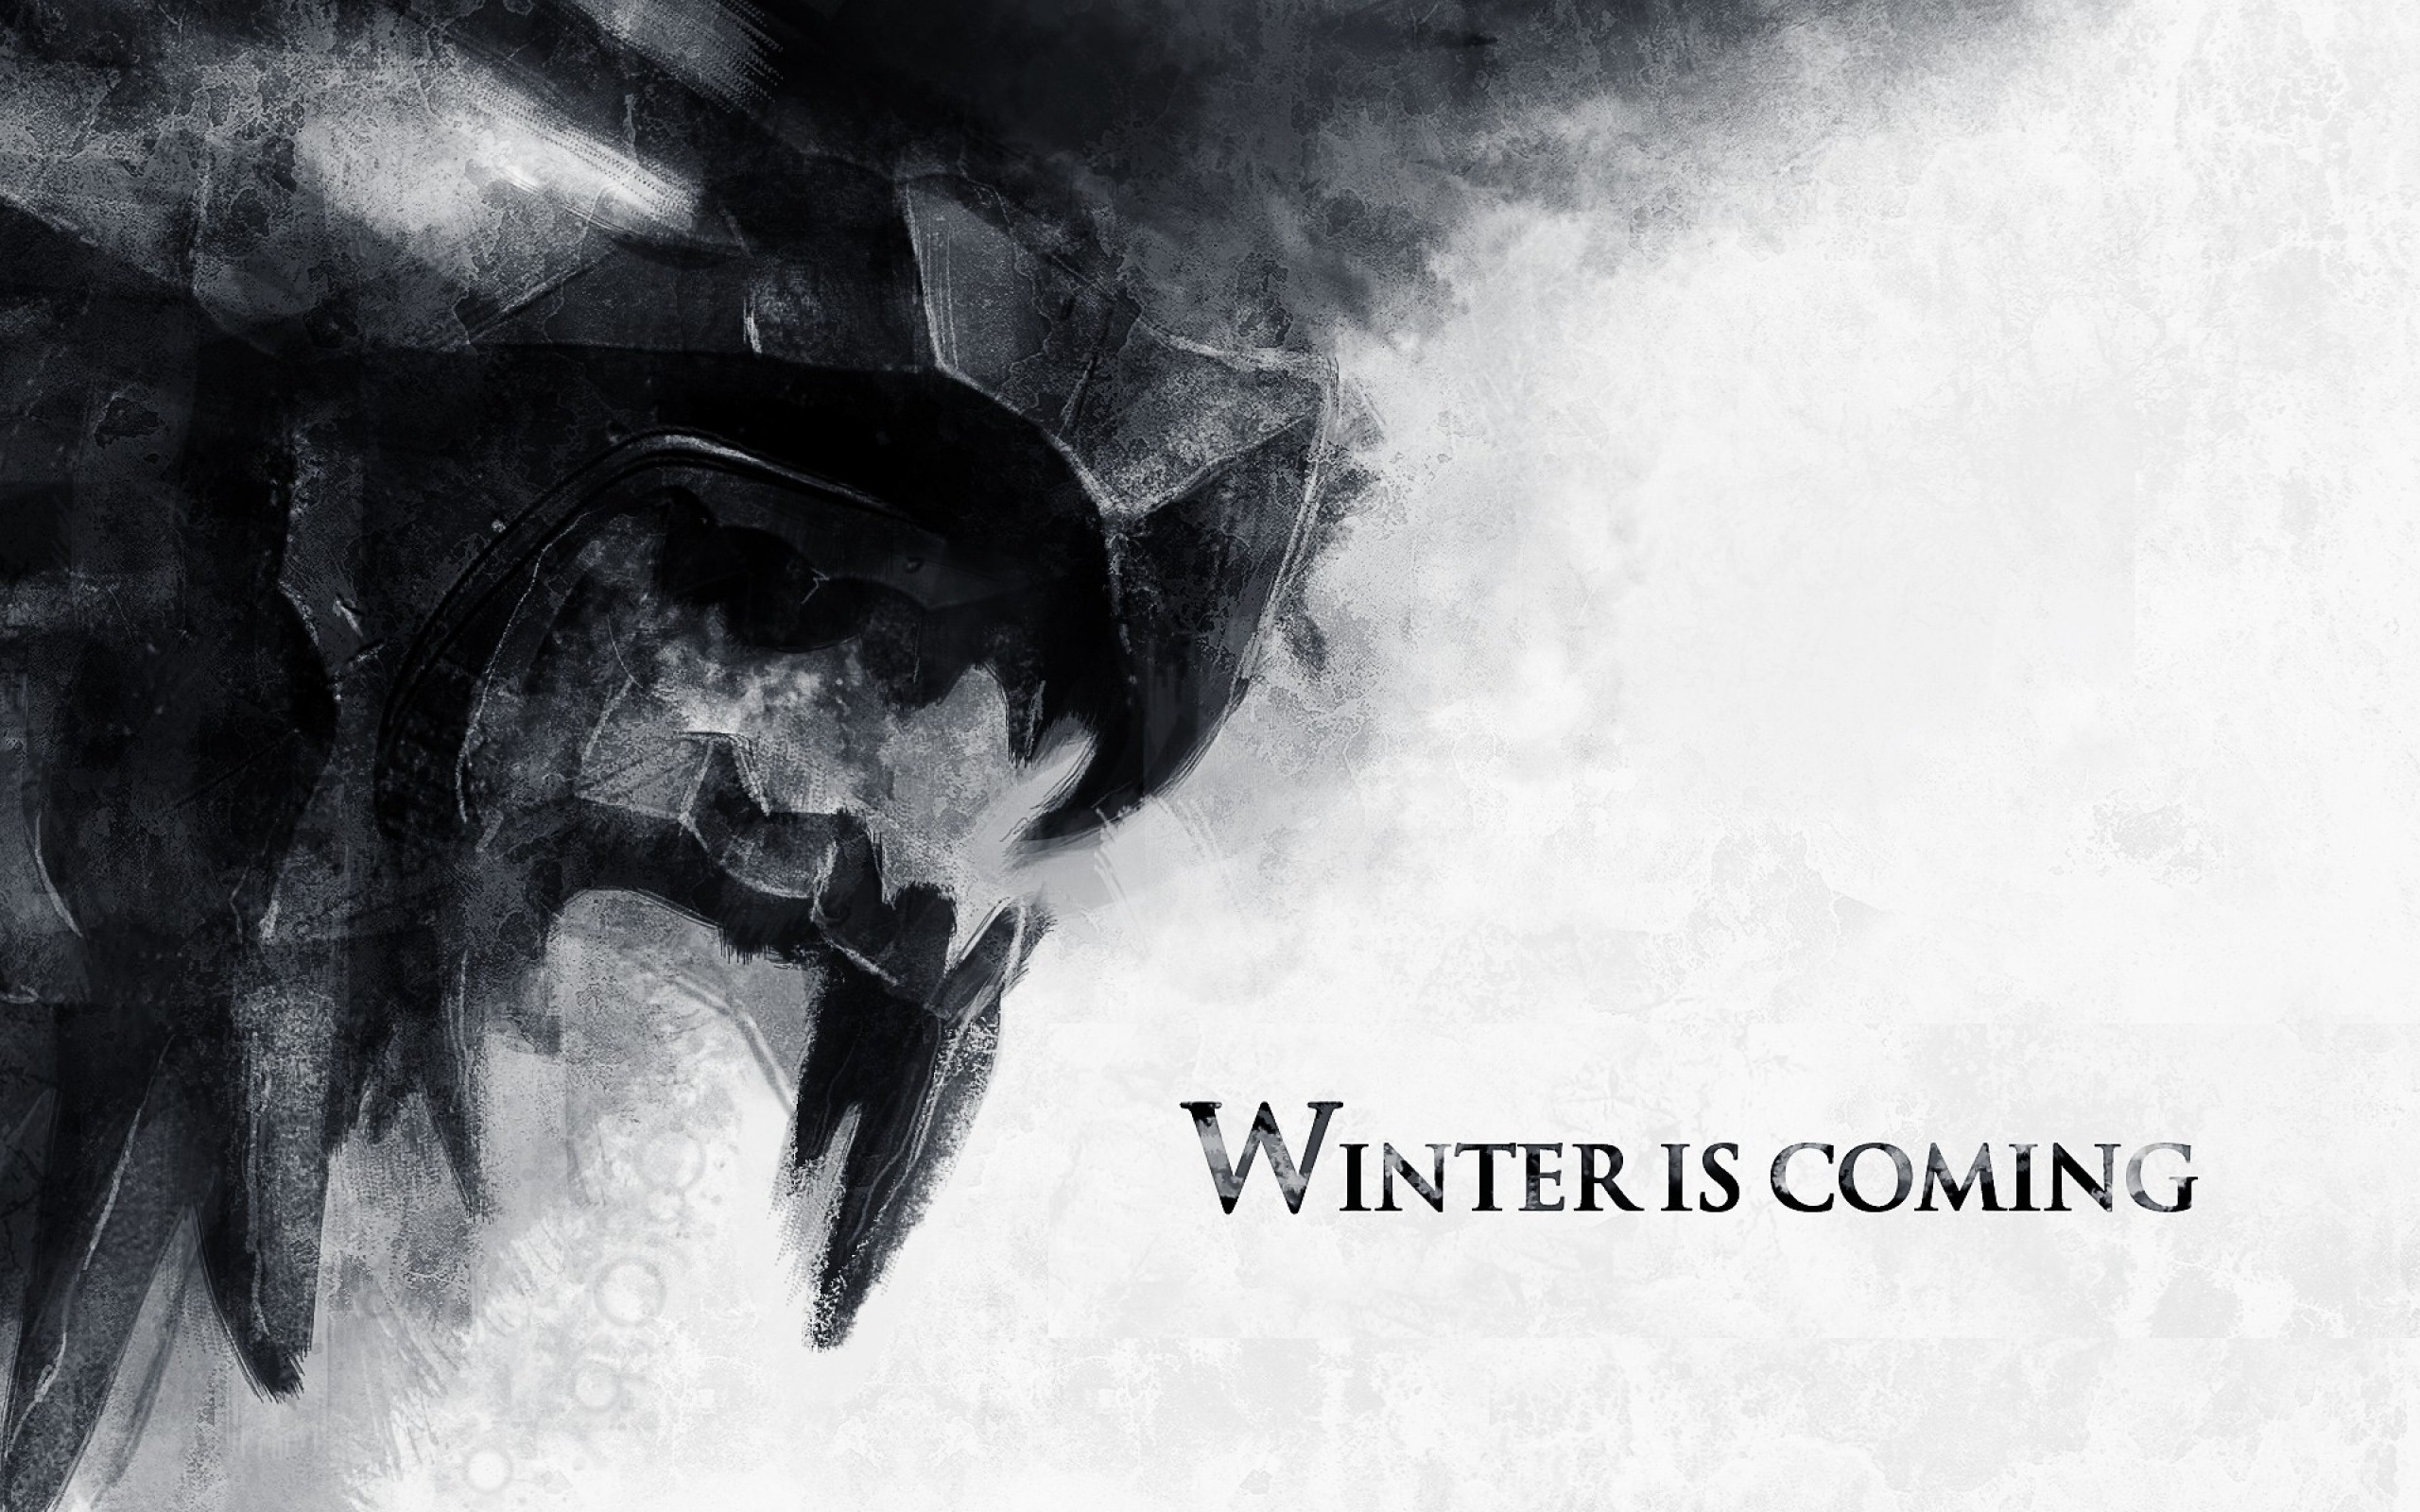 Ultra Hd Game Of Thrones 25471 Hd Wallpaper Backgrounds